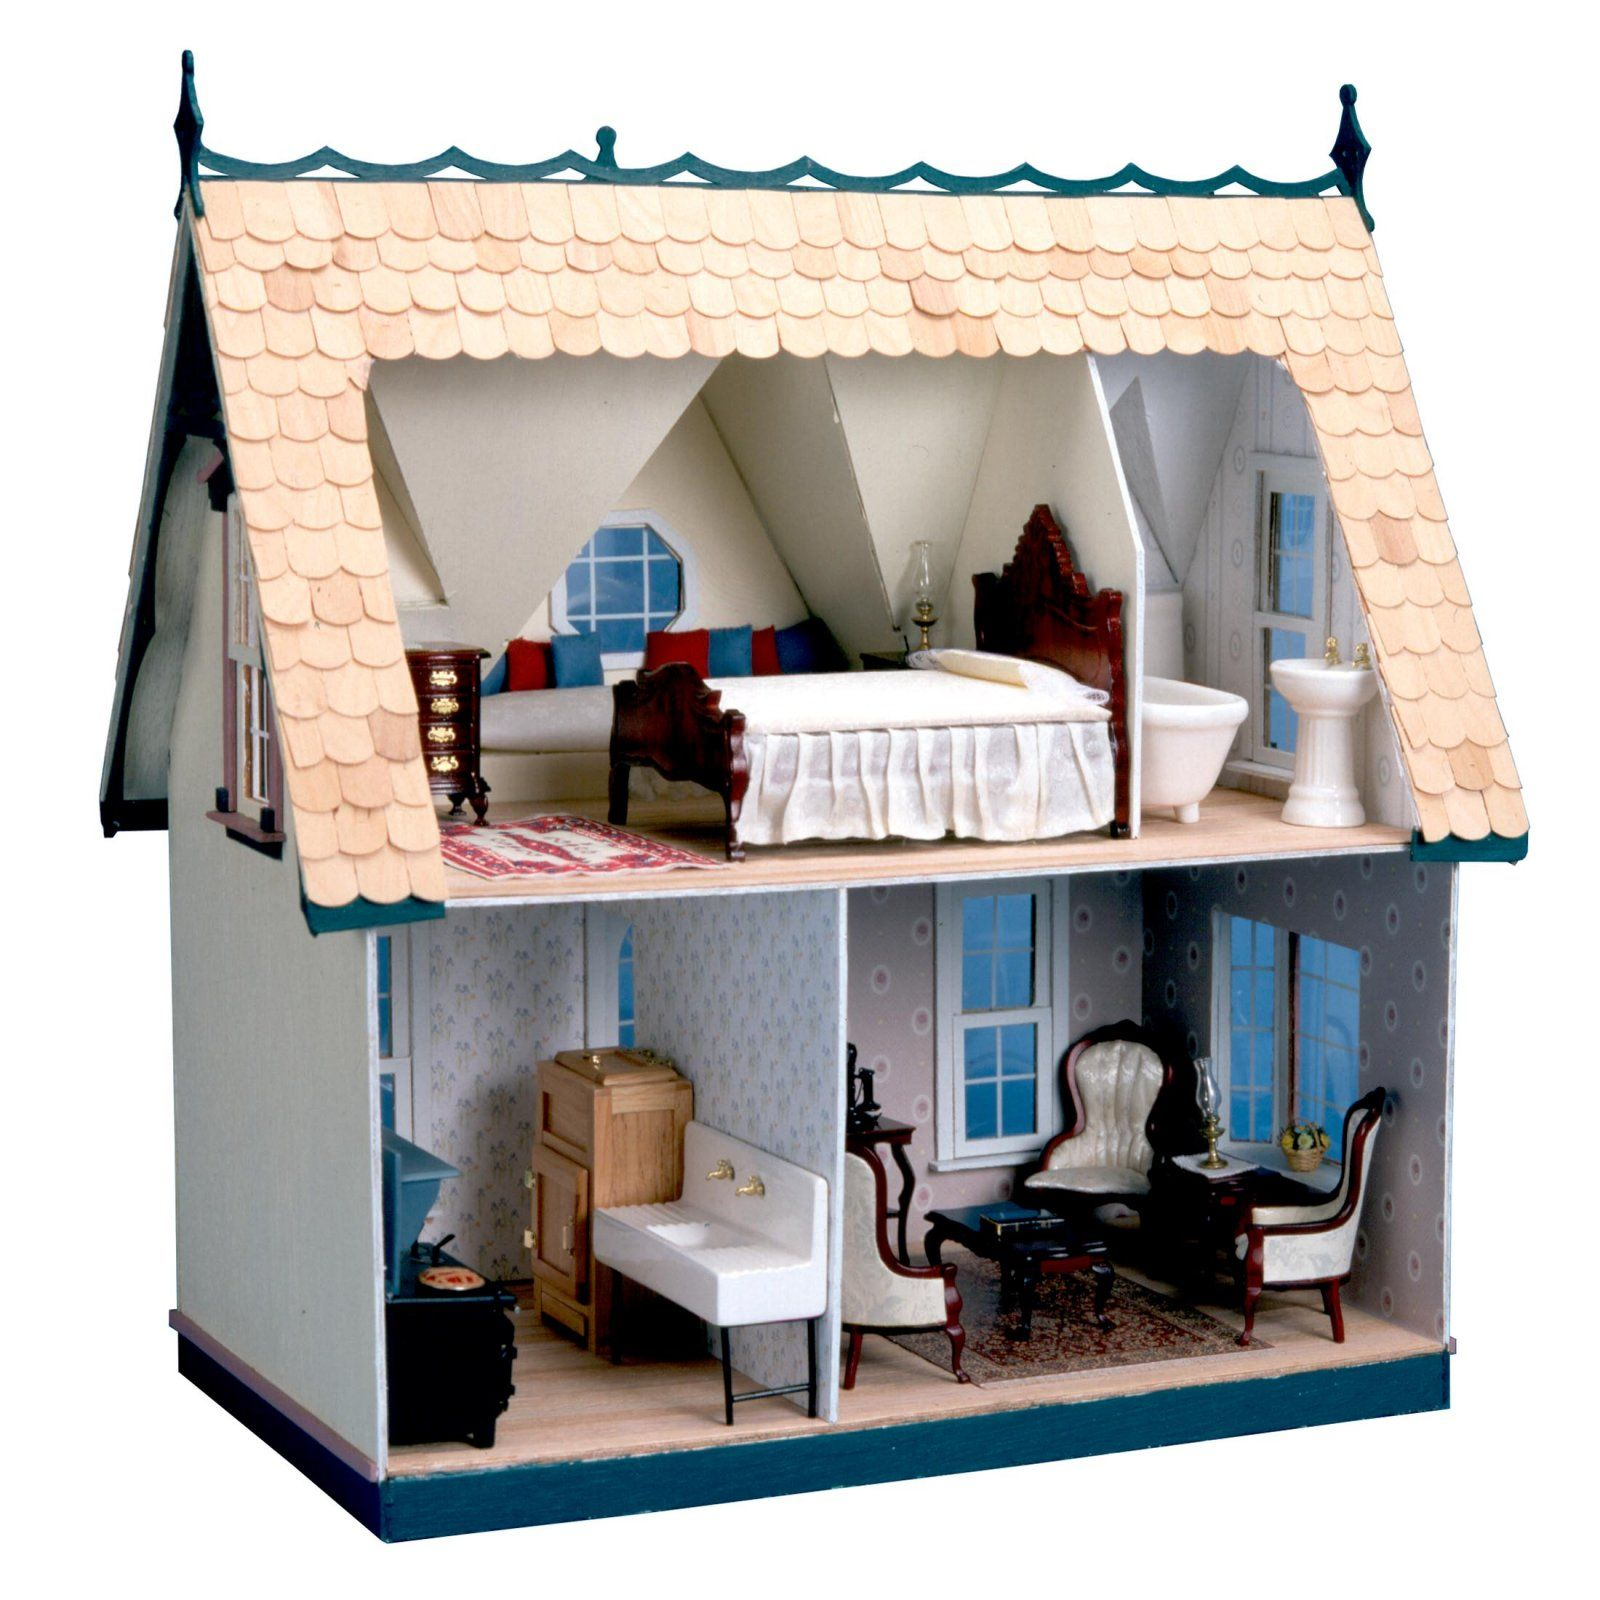 Greenleaf Orchid Dollhouse Kit   1 Inch Scale   Collector Dollhouse Kits At Doll  Houses Galore